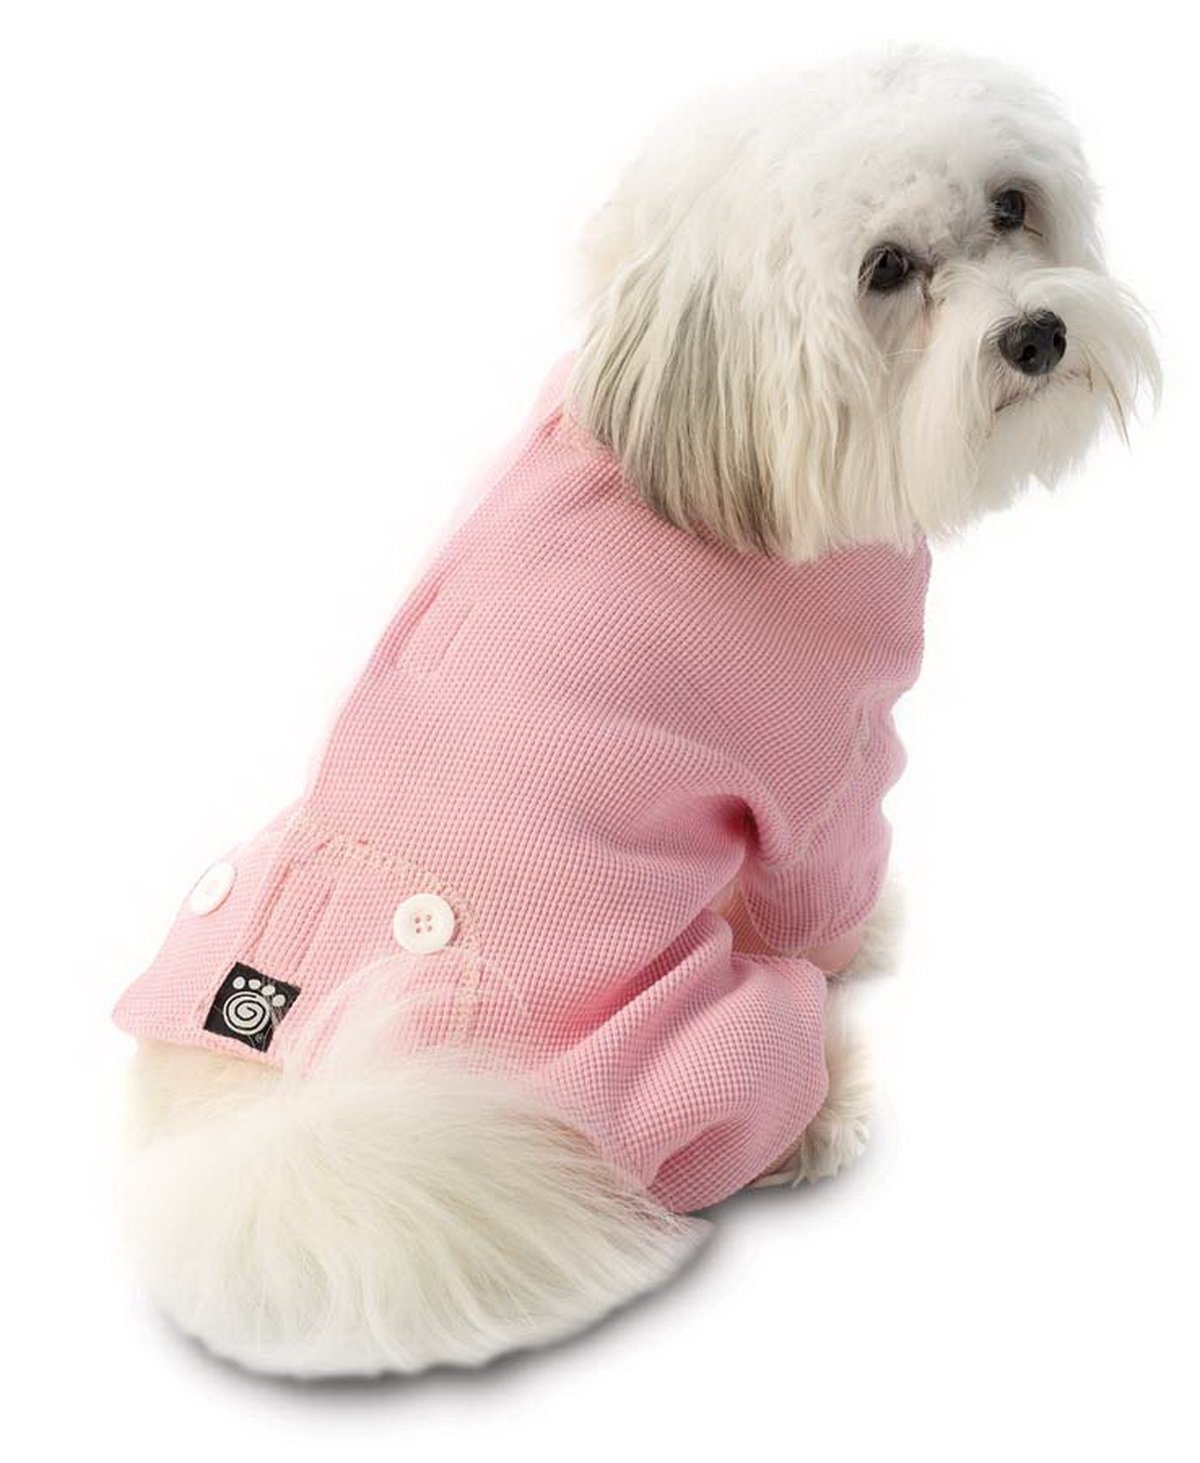 Petrageous Designs Cozy Thermal Pajamas for Pets, Medium, Pink with White Stitching 205PMD